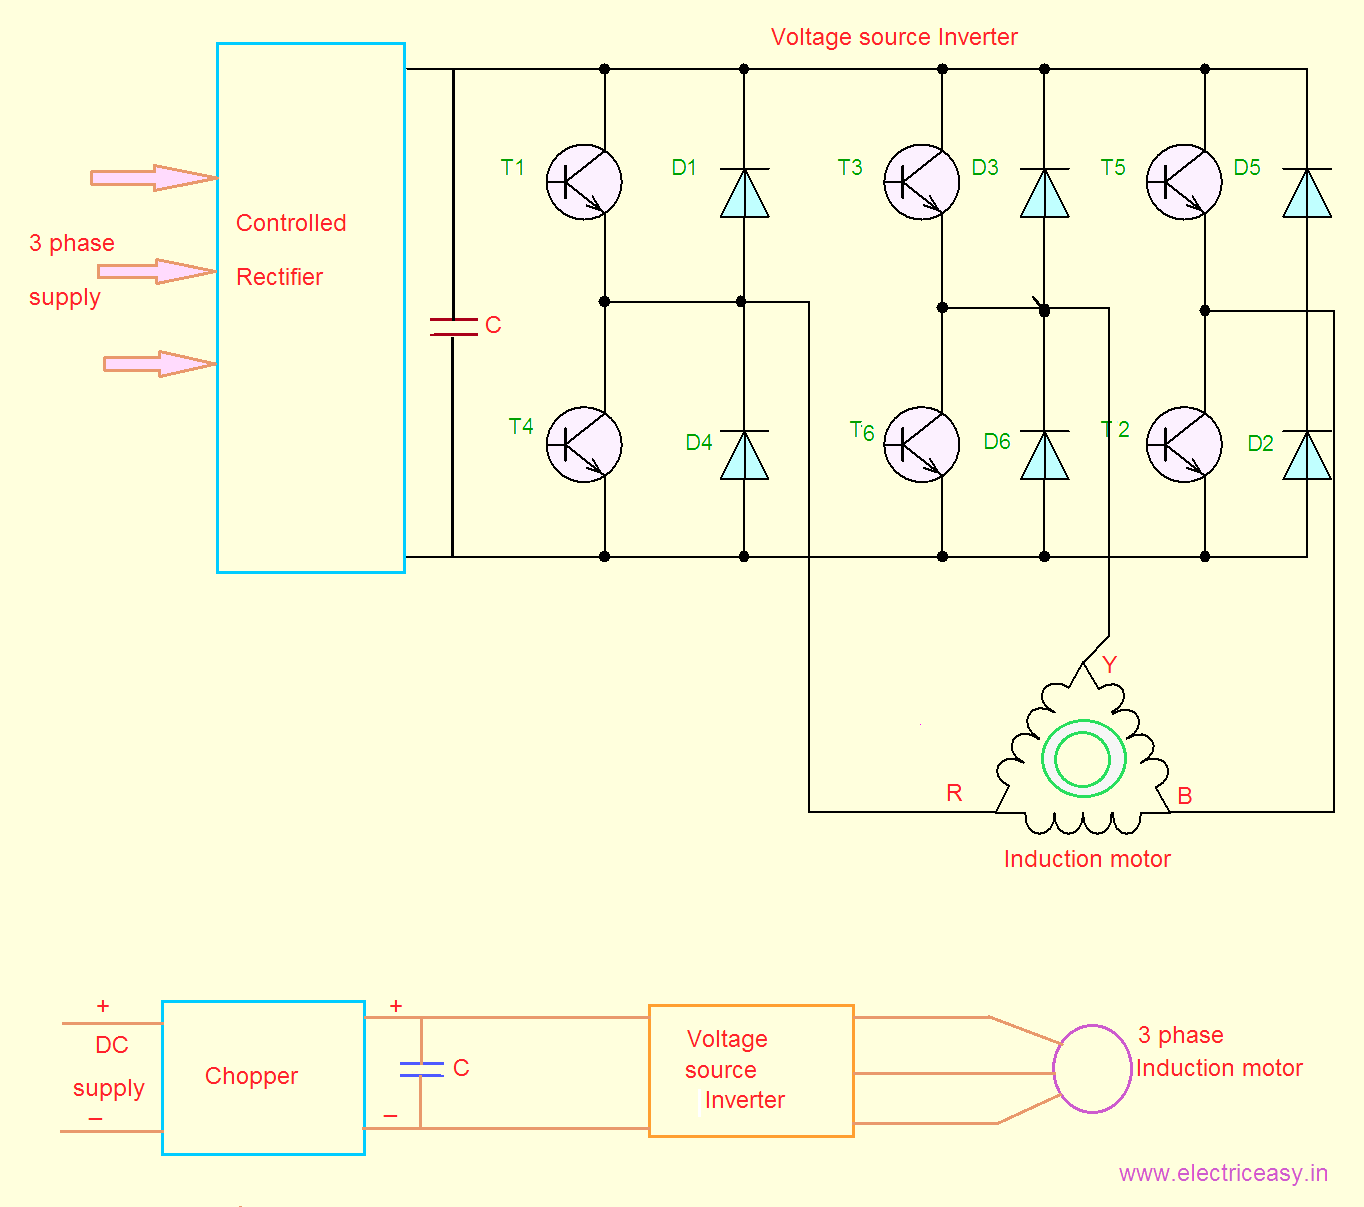 Vsi And Csi Fed Induction Motor Drives Electric Easy Dynamic Braking Resistor Wiring Diagram The Circuit For Synchronous Is Shown Above It Consists Of Voltage Source Inverter Ie Combination Transistors Diodes Which